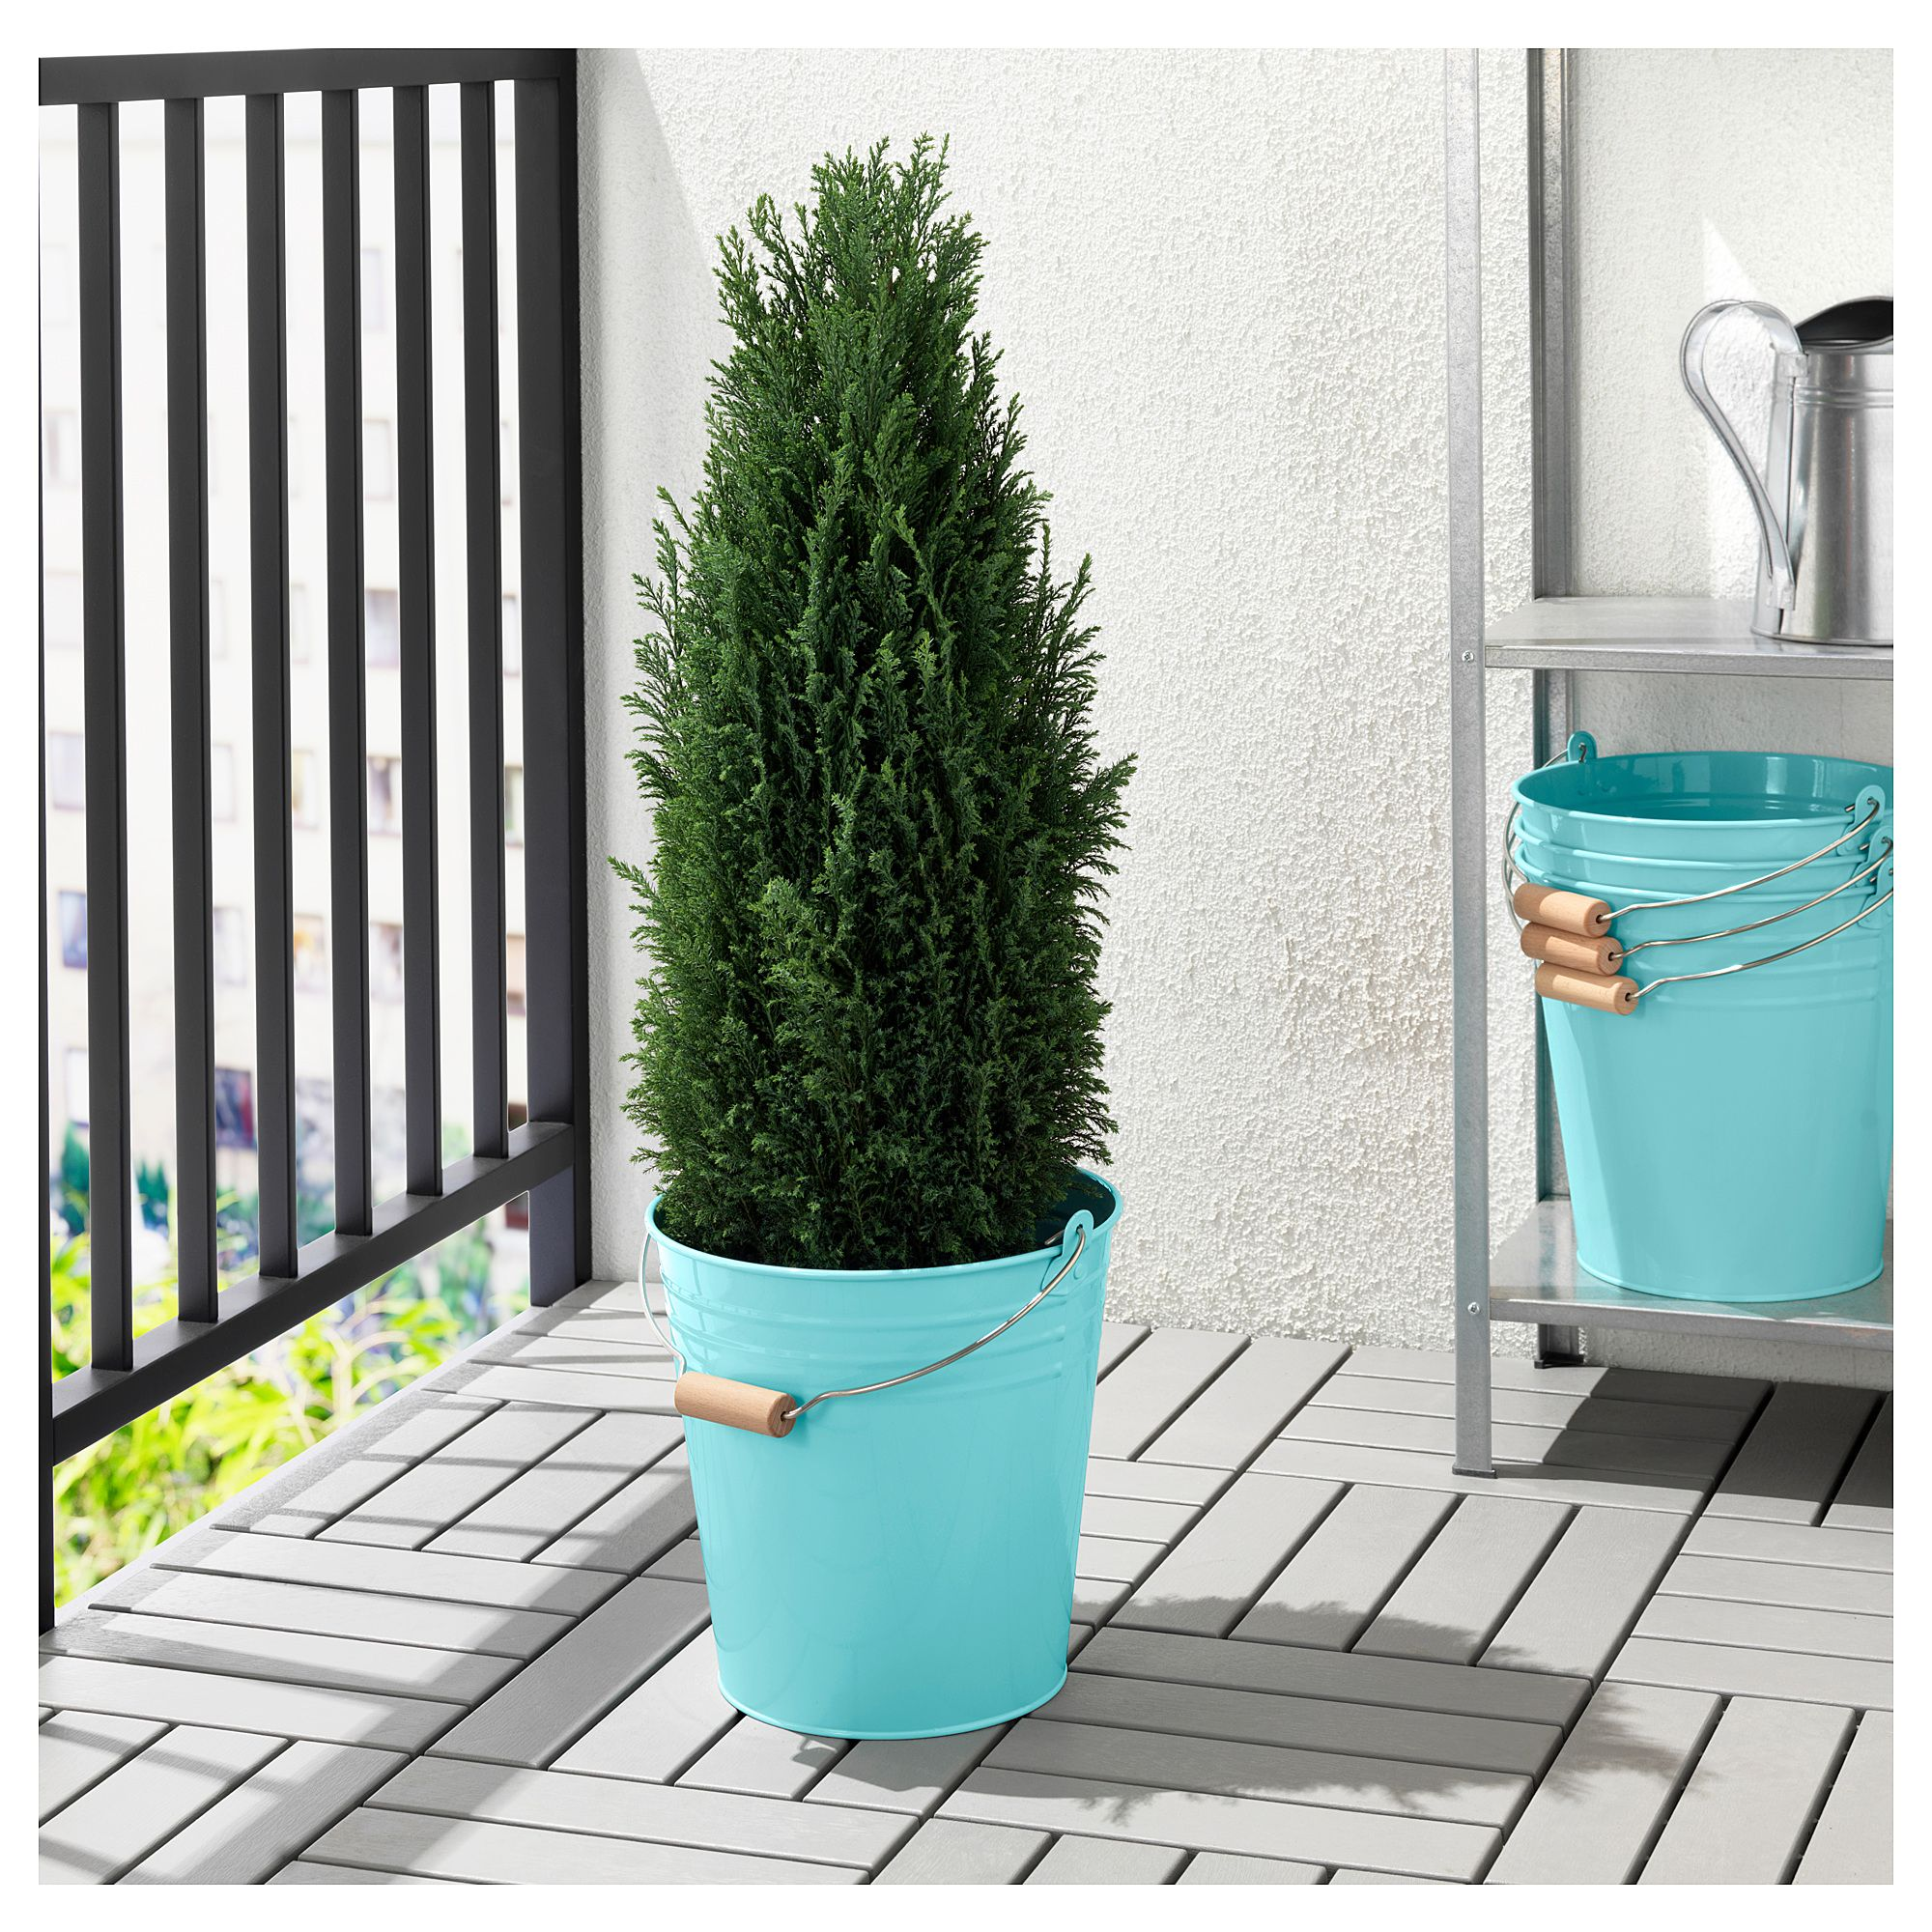 socker bucket/plant pot, indoor/outdoor, turquoise